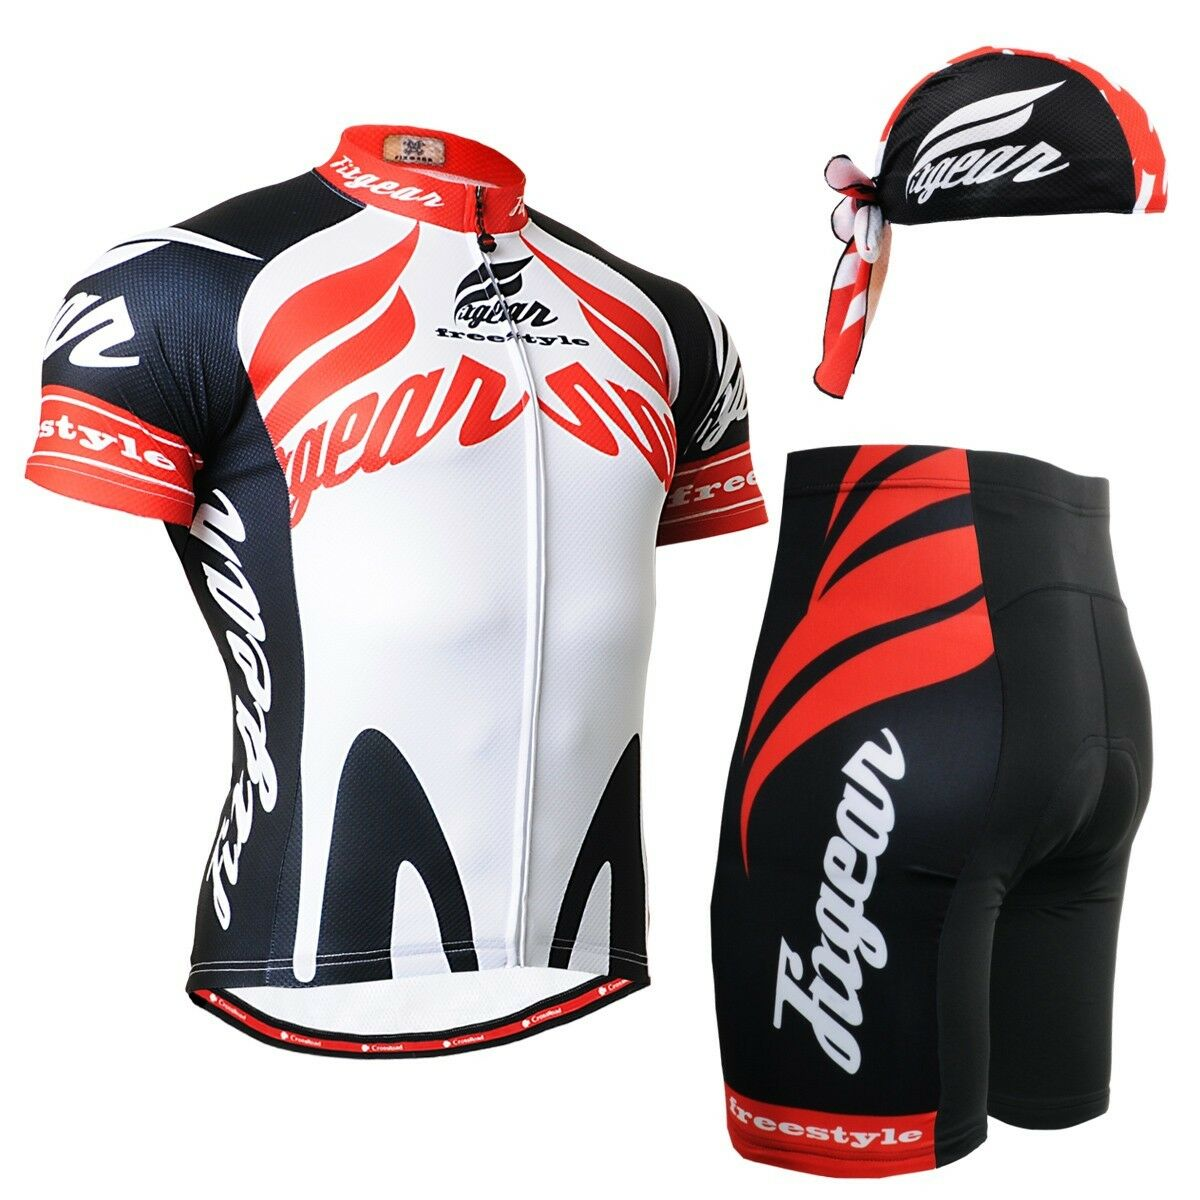 FIXGEAR CS-1202-SET Cycling Cycling CS-1202-SET Jersey & Shorts Padded, Bicycle Wear, MTB Road Bike e52a9d